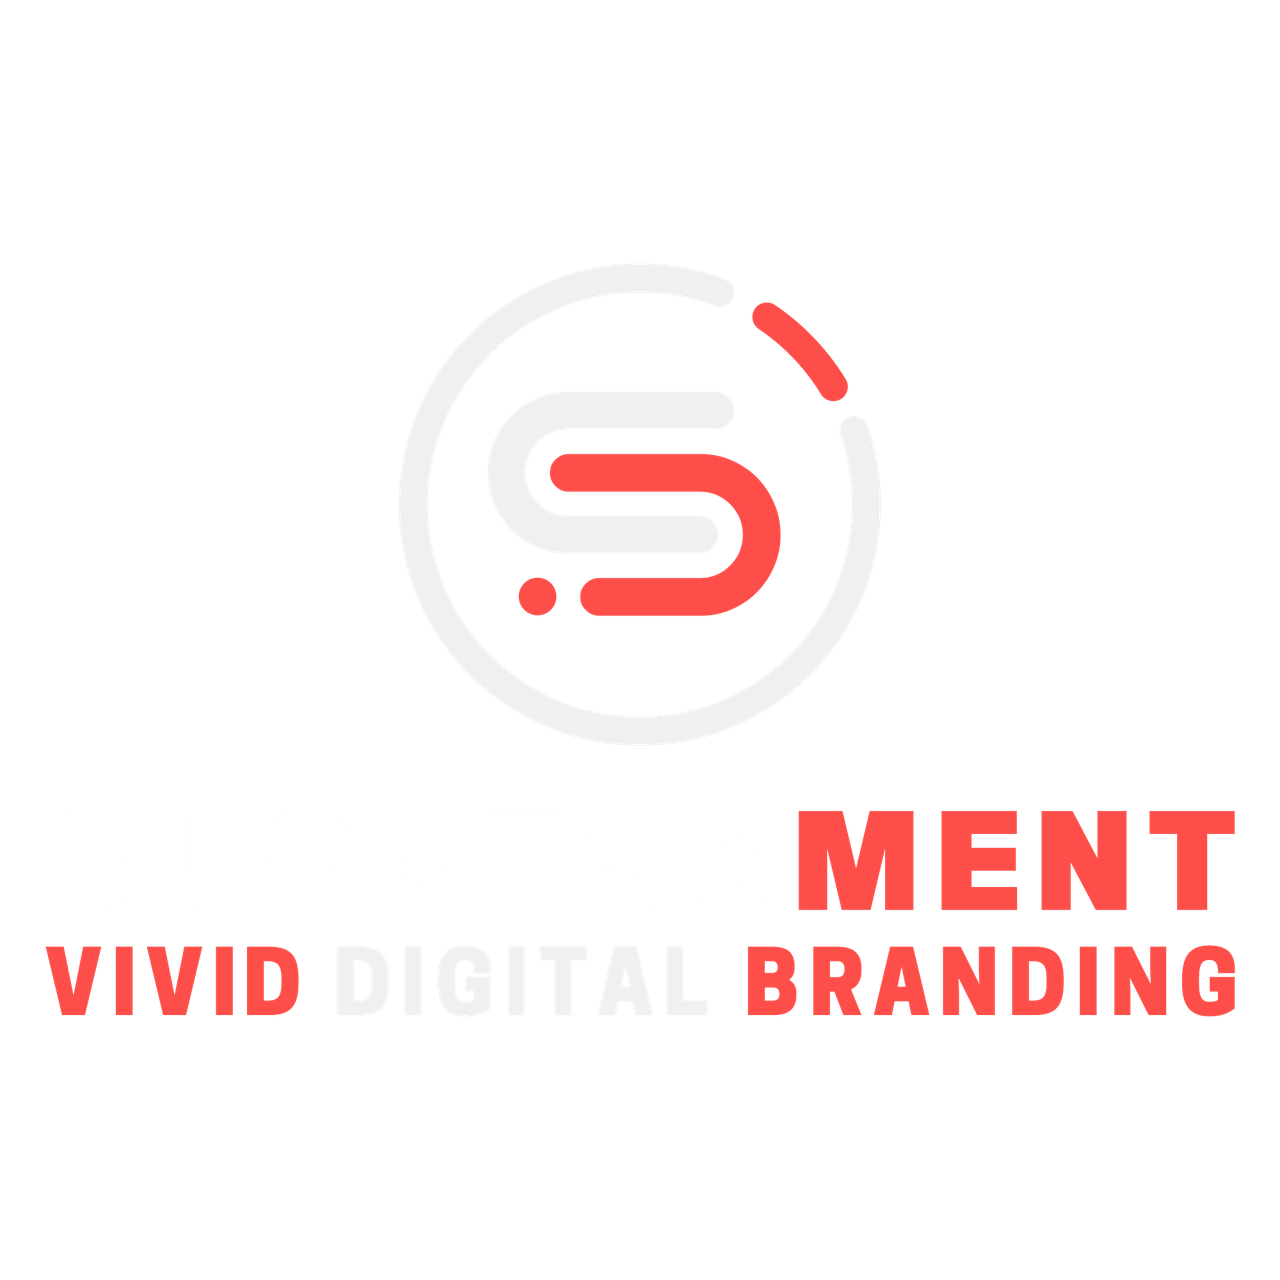 successment brand strategy